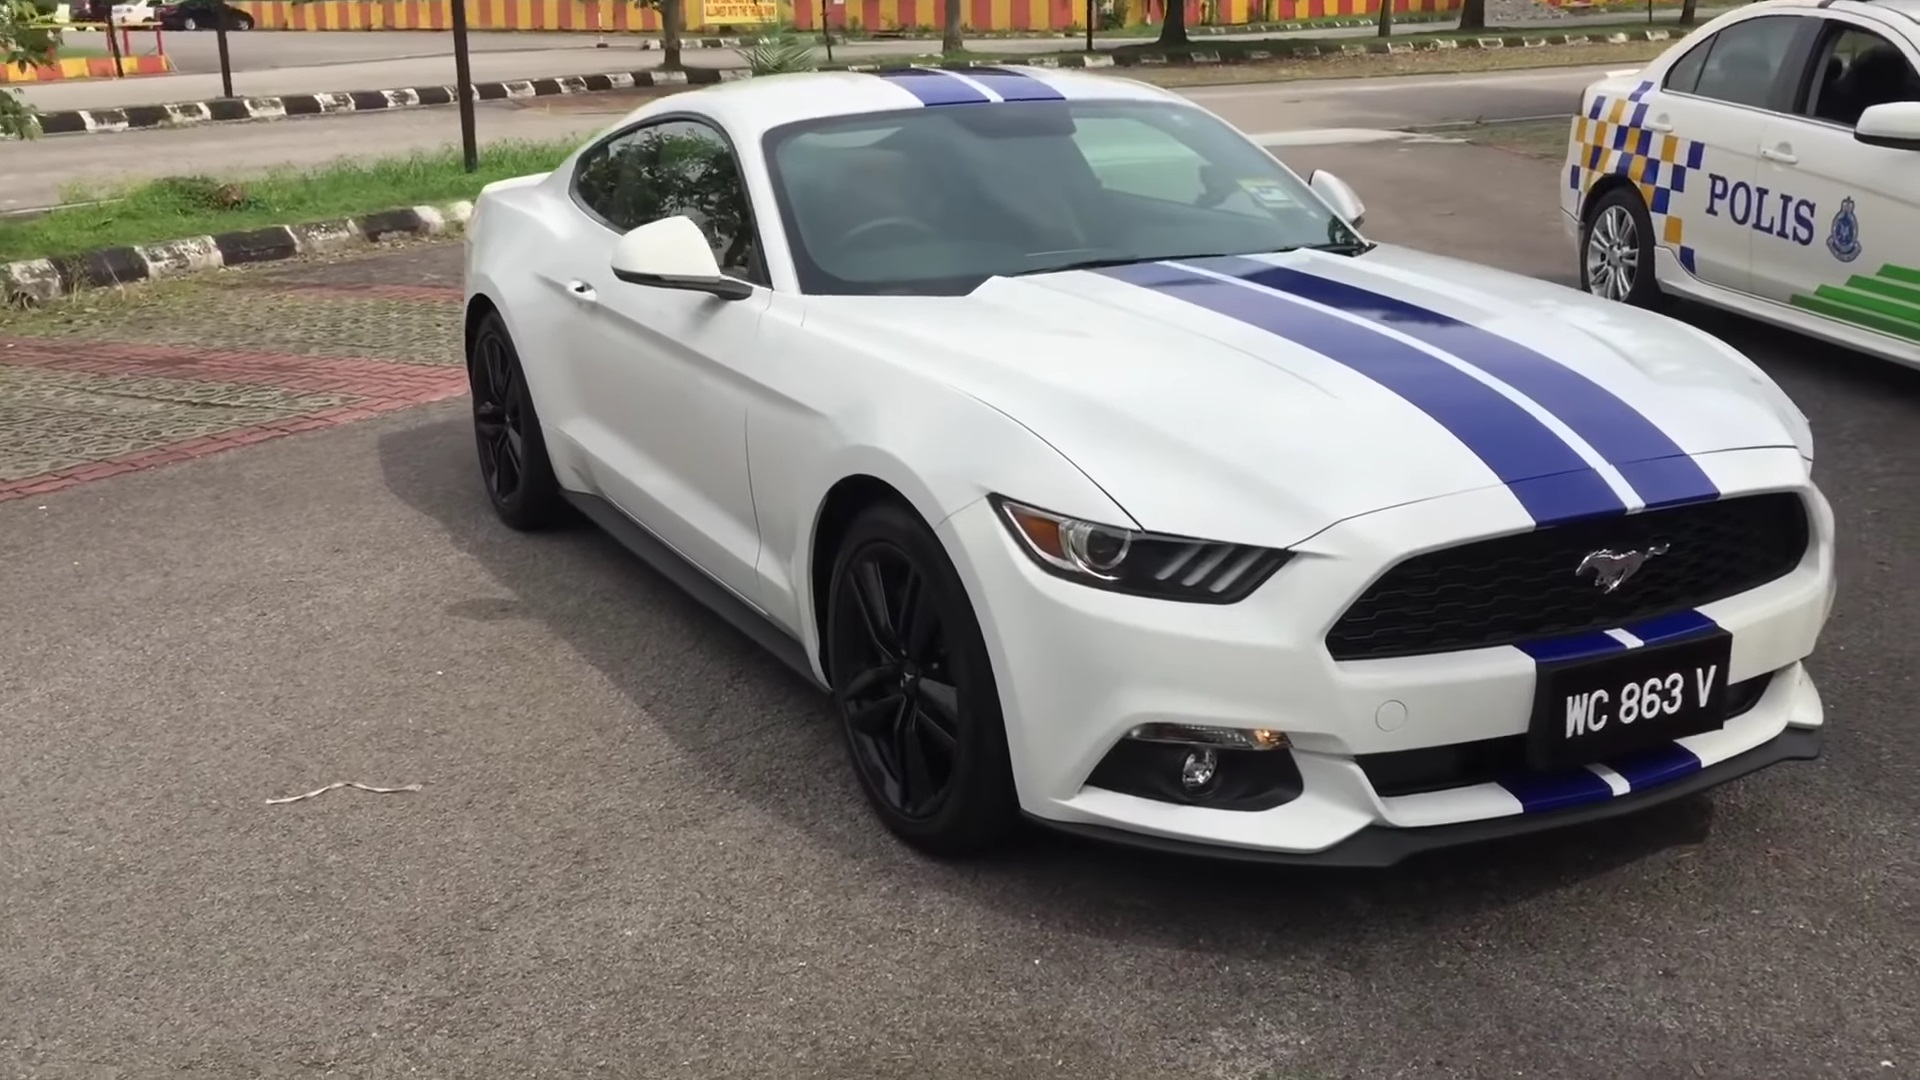 Video: 2016 Ford Mustang 2.3 Ecoboost Interior/Exterior Tour